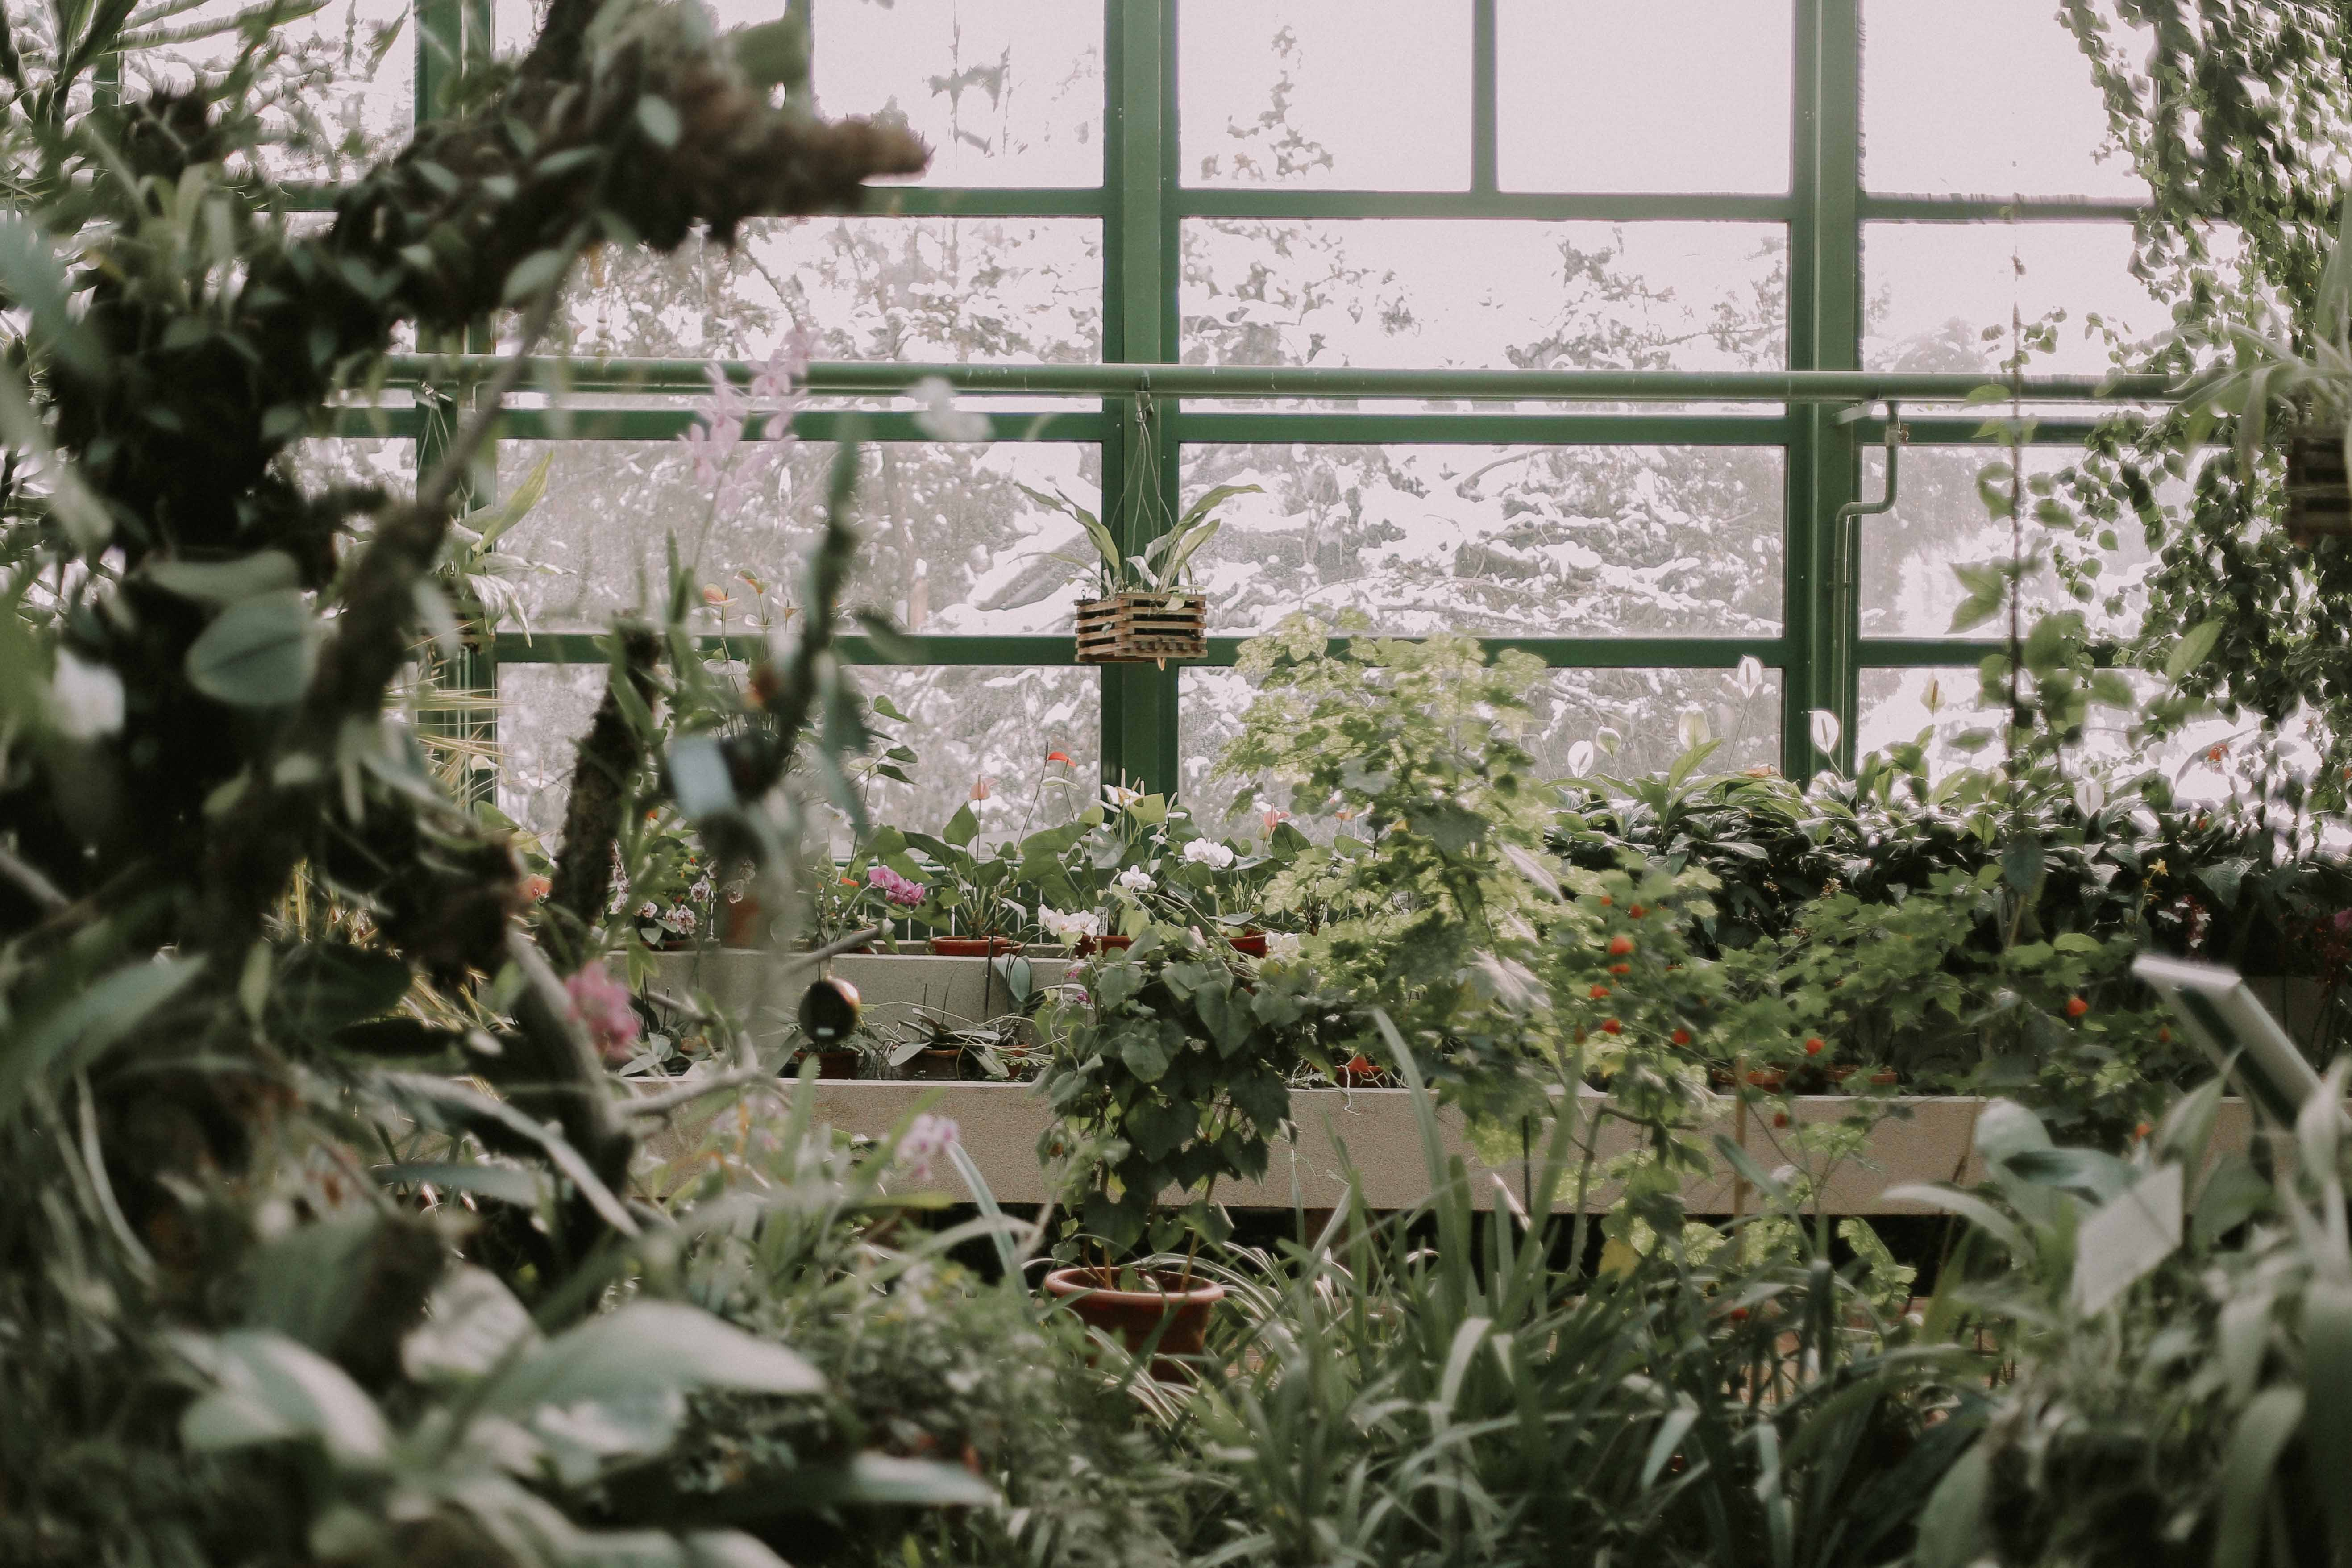 The inside of a greenhouse with lush green vegetation